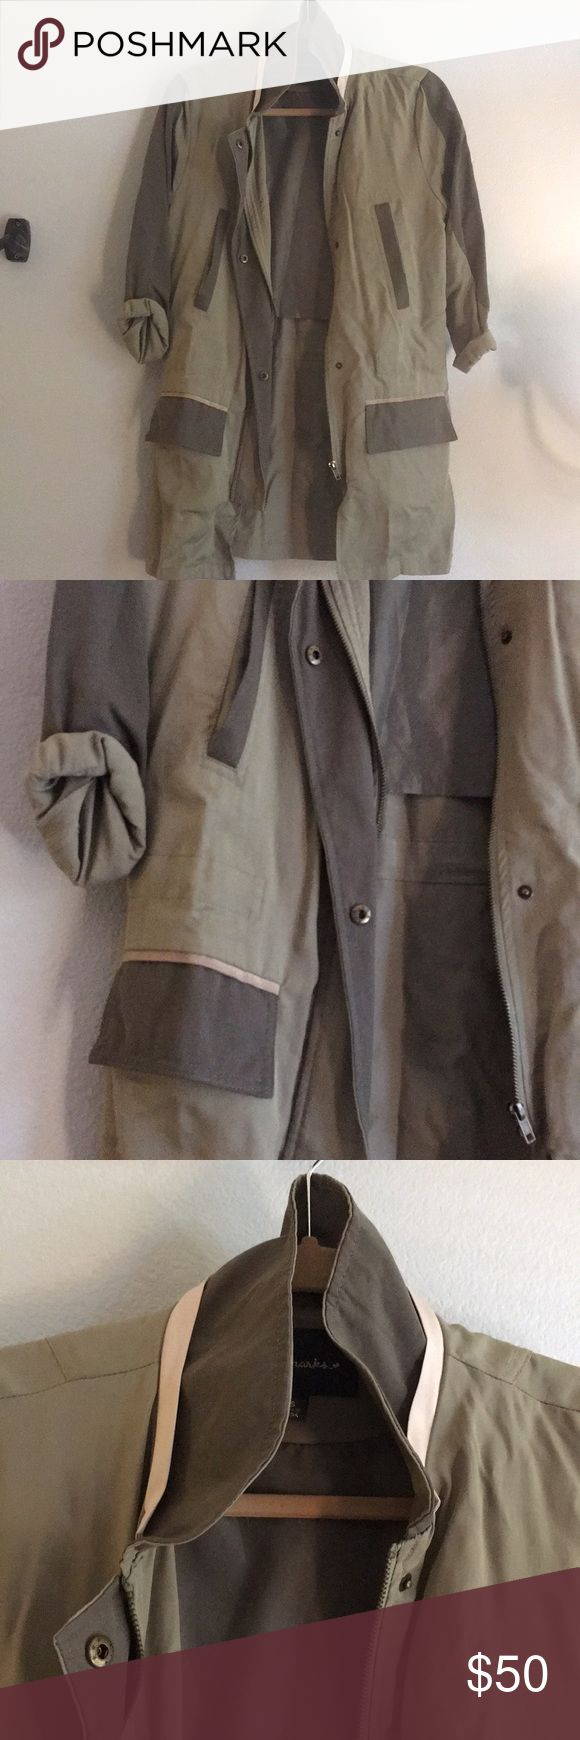 Army Green Trench Raincoat This cute rainy day jacket is warm and also stylish. Raincoats don't have to be ugly! Jackets & Coats Trench Coats